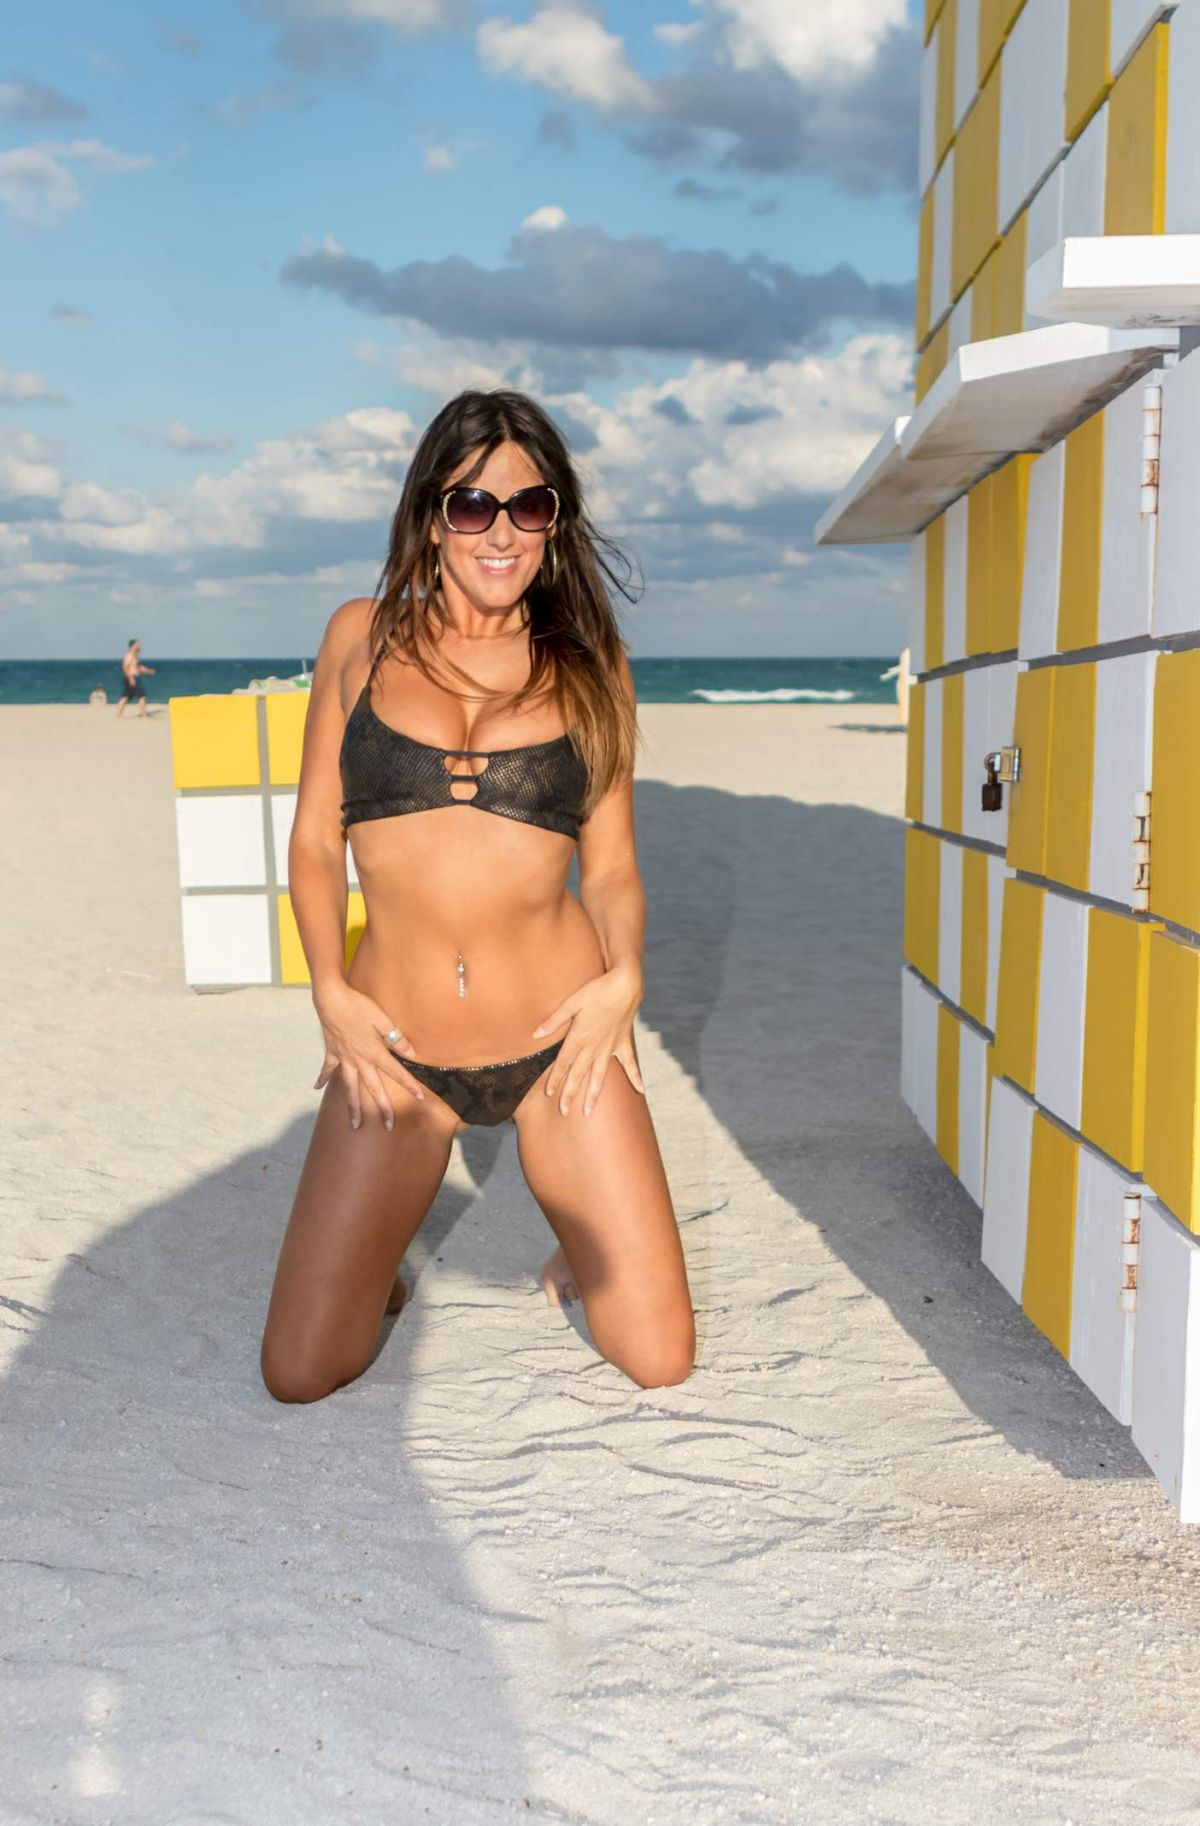 Claudia Romani in Bikini on South Beach in Miami 2 Pic 33 of 35